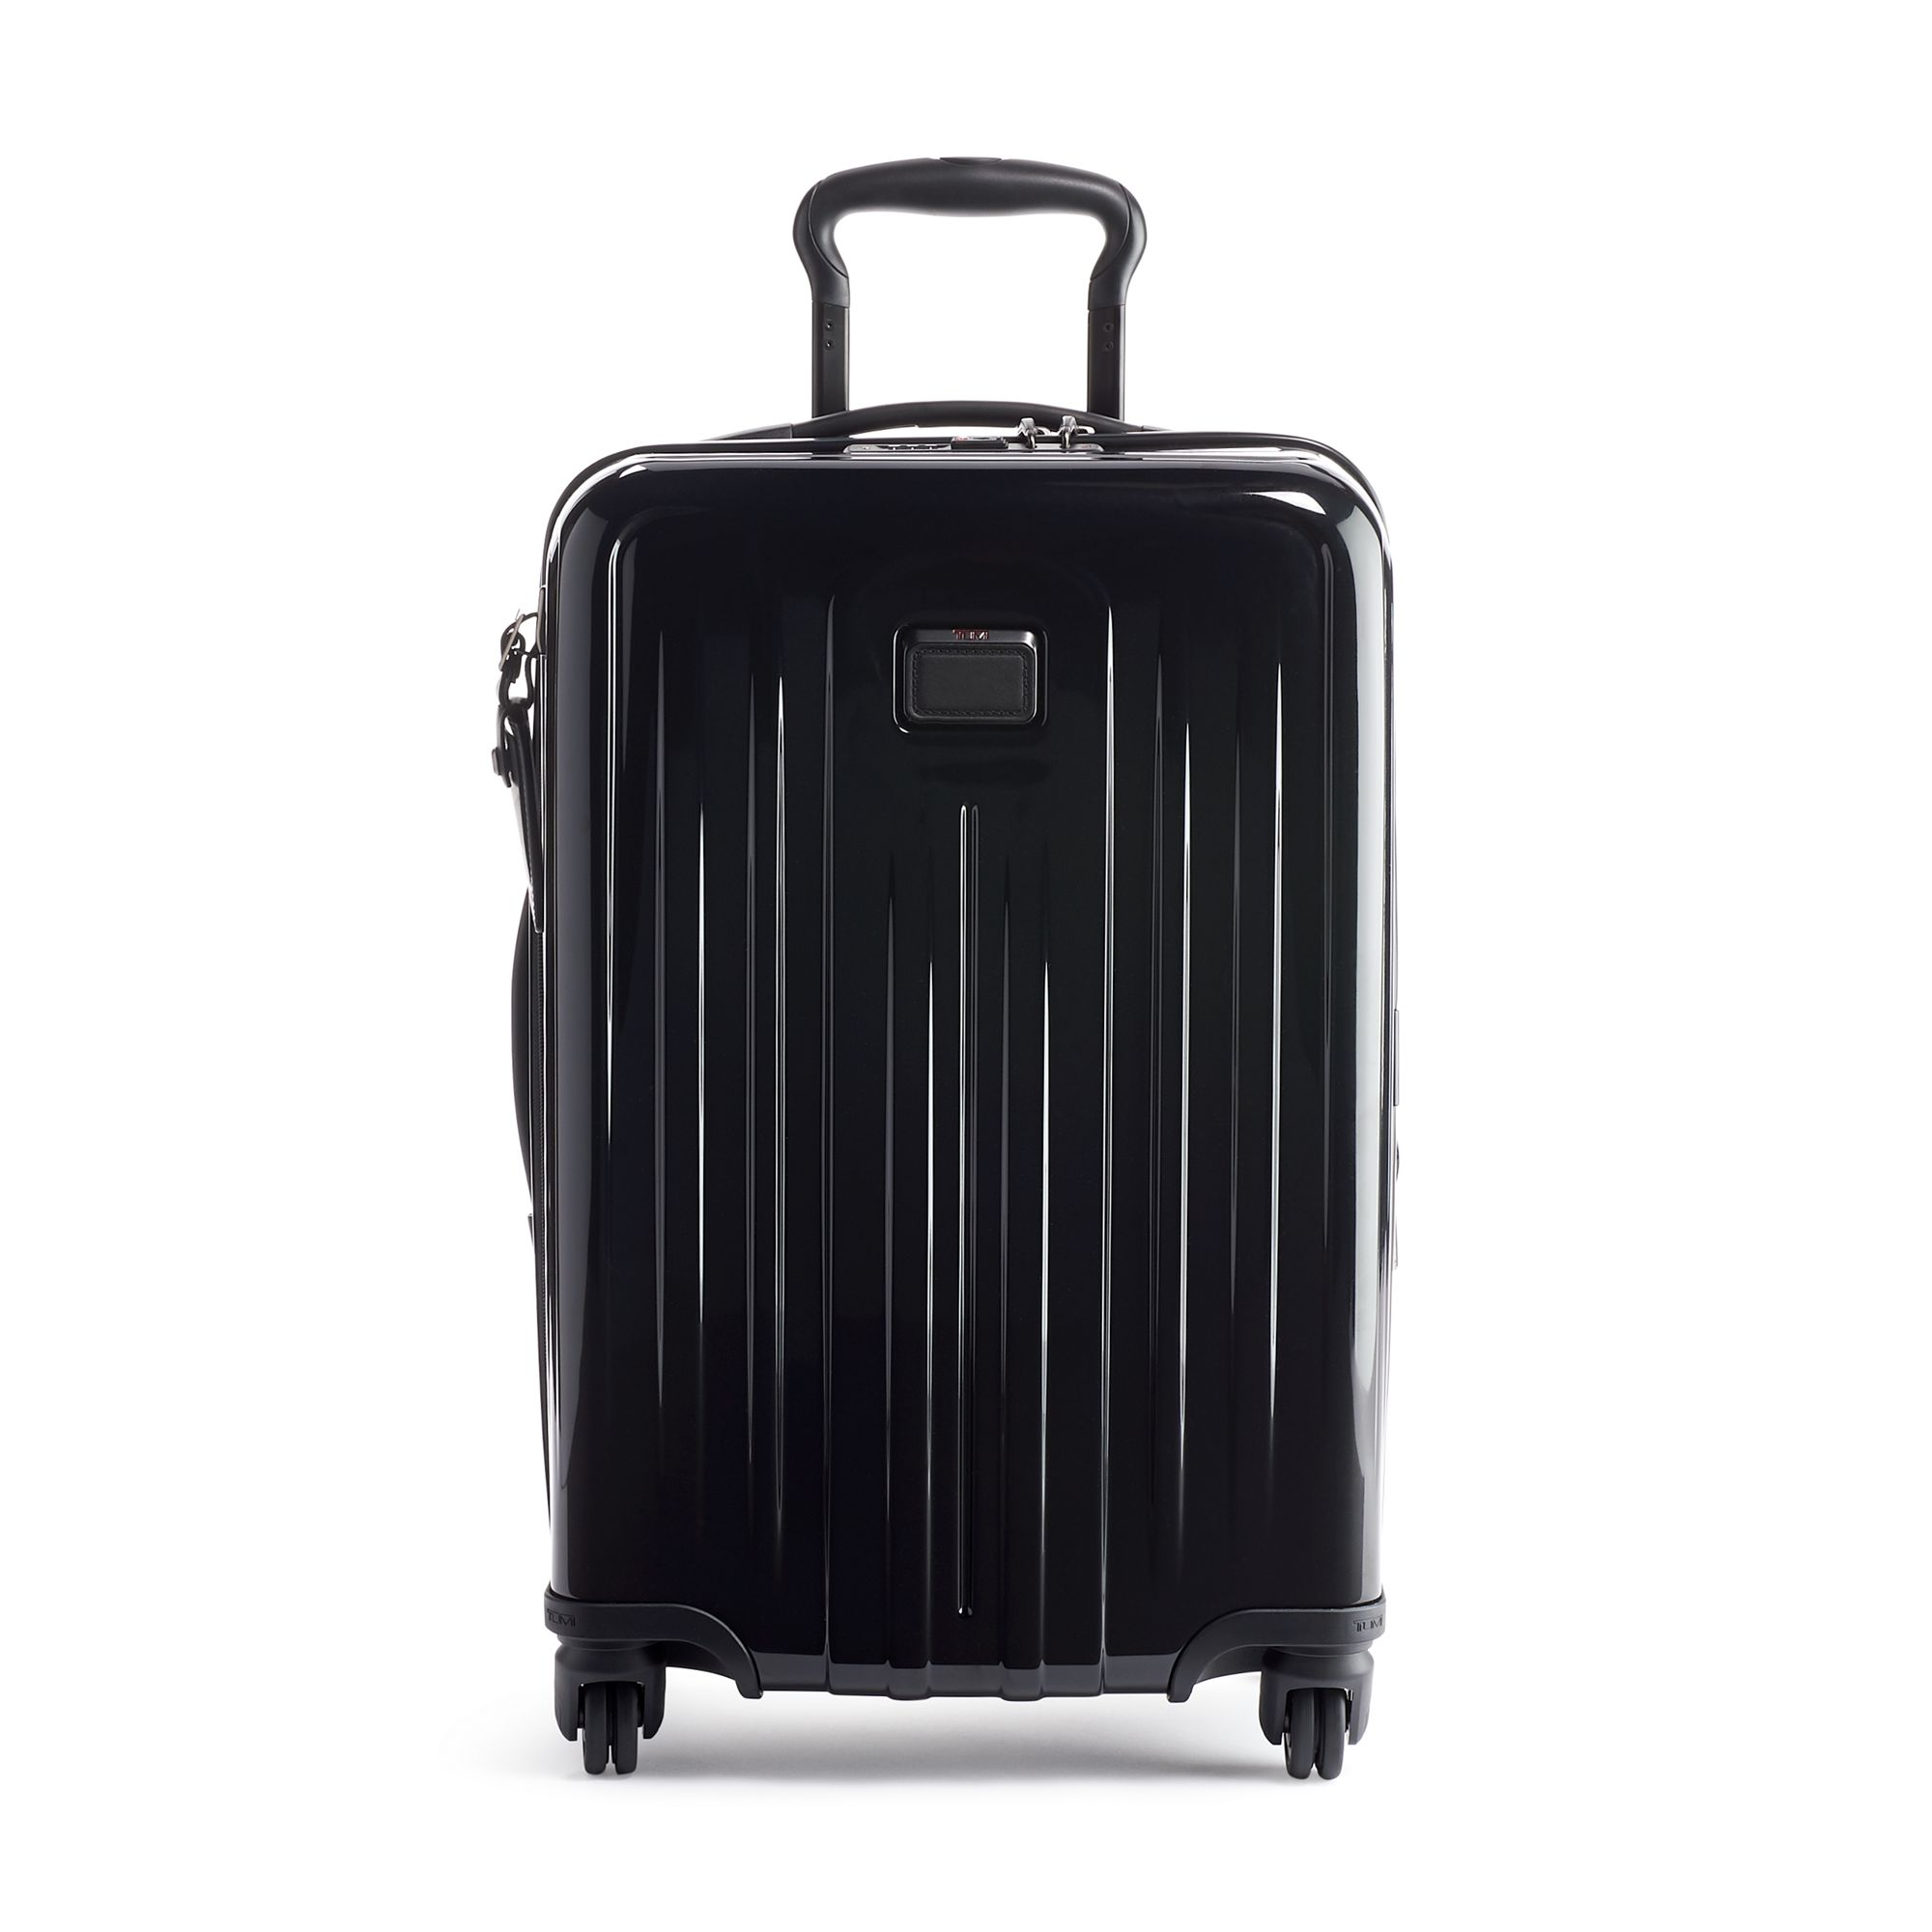 Tumi V4 International Expandable 4 Wheeled Carry On